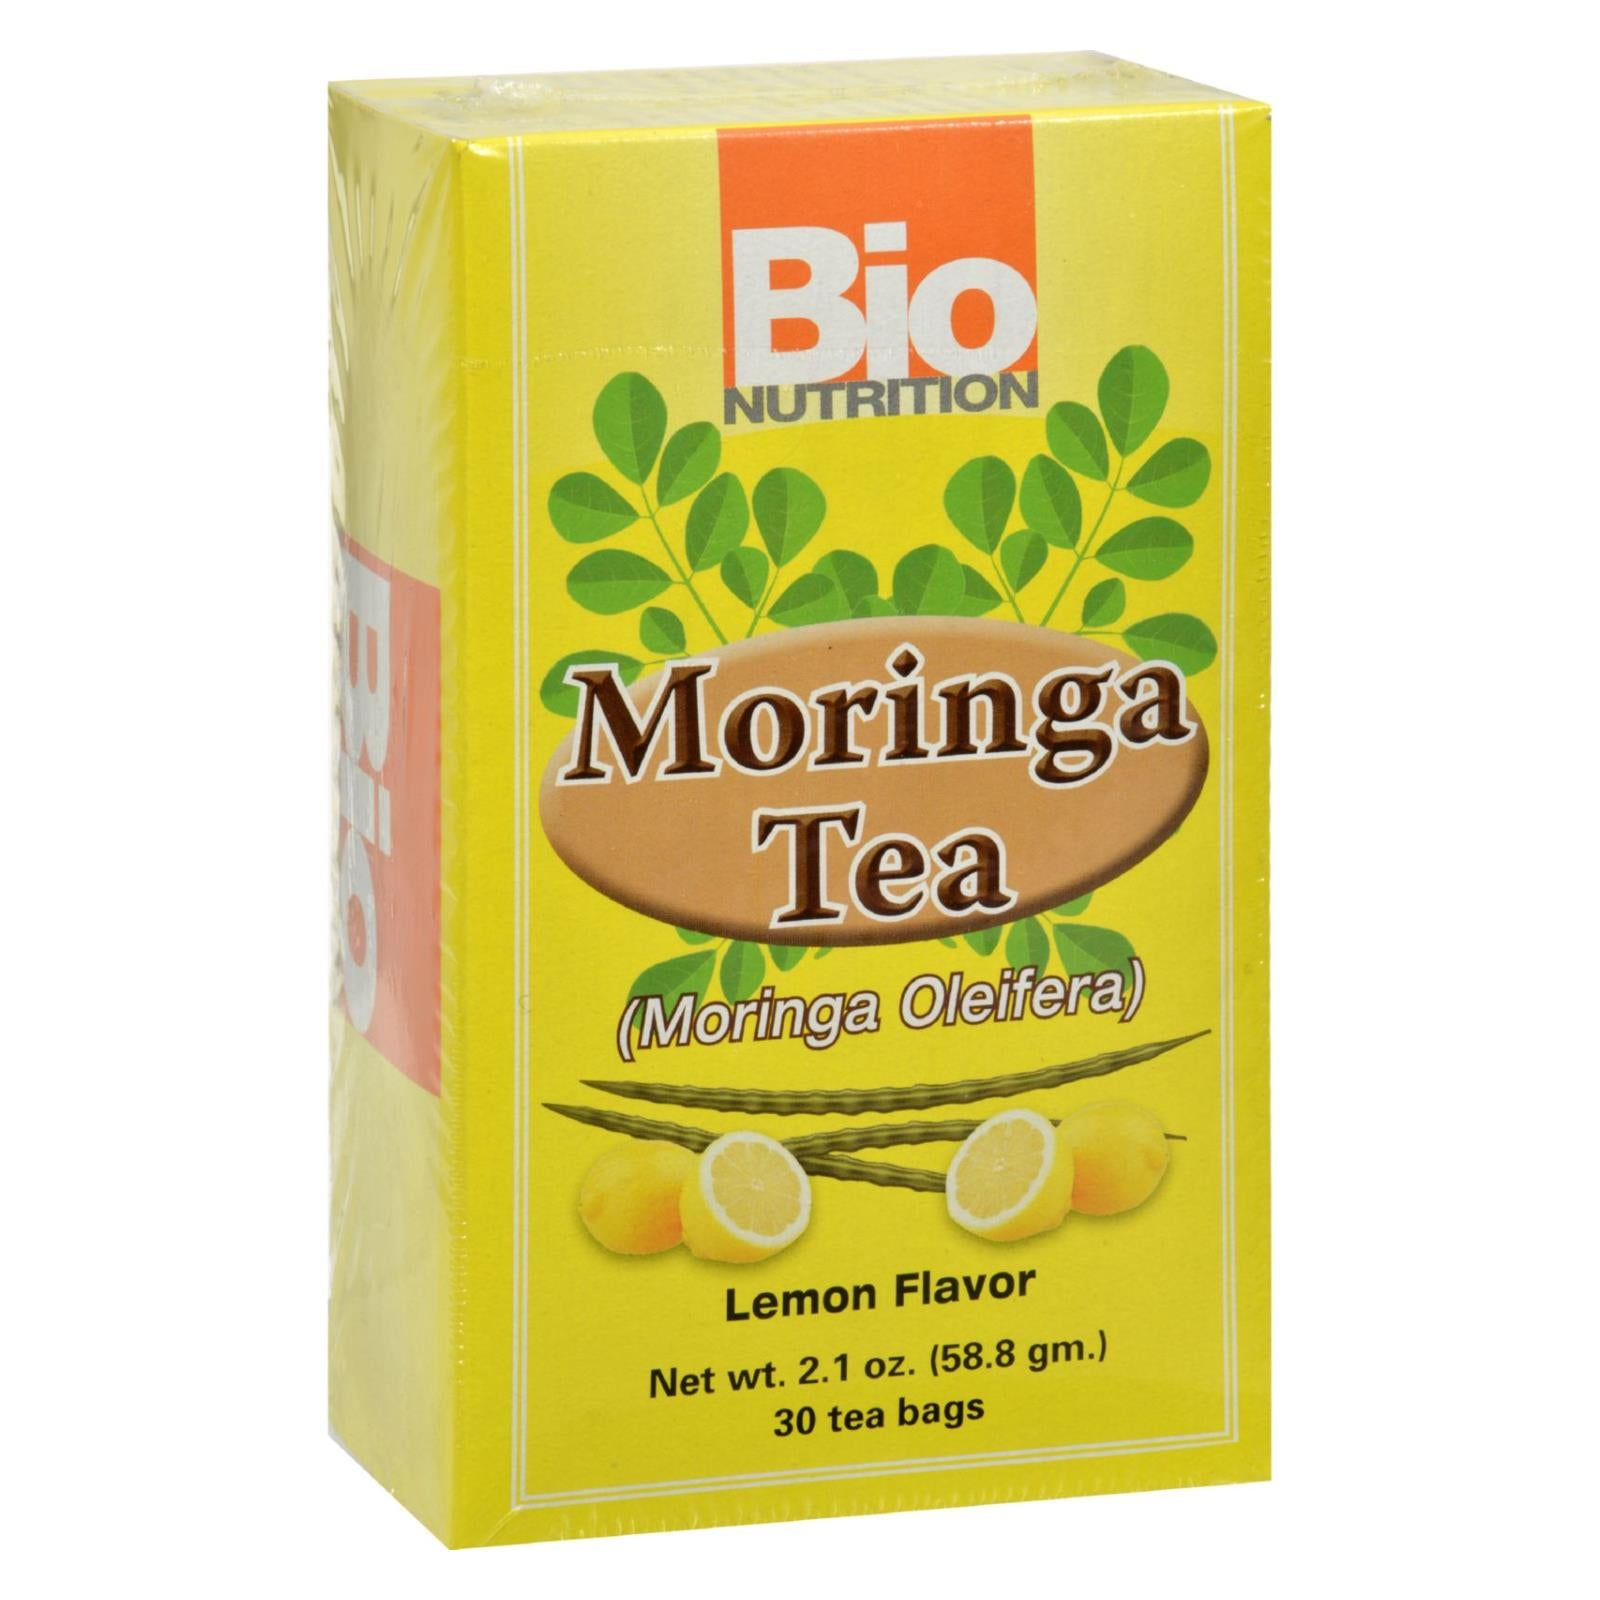 Buy Bio Nutrition Tea - Moringa Lemon - 30 Bags - Wellness Tea from Veroeco.com